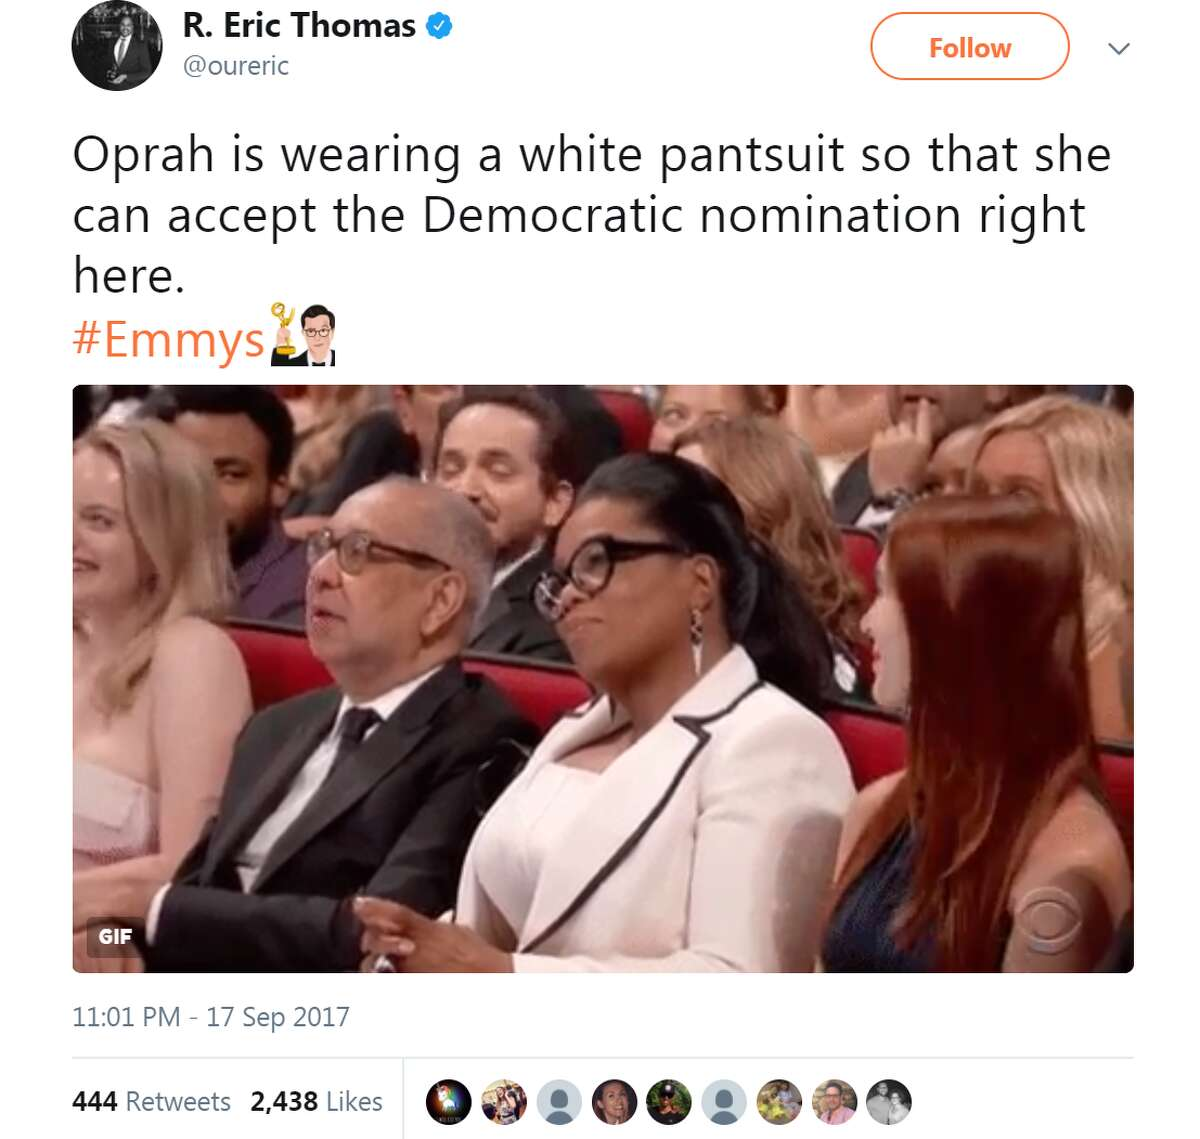 Twitter reacts The 2017 Emmys were a mixed night for those who tuned in, at least according to social media reaction. See how Twitter reacted to the 2017 Emmys oureric